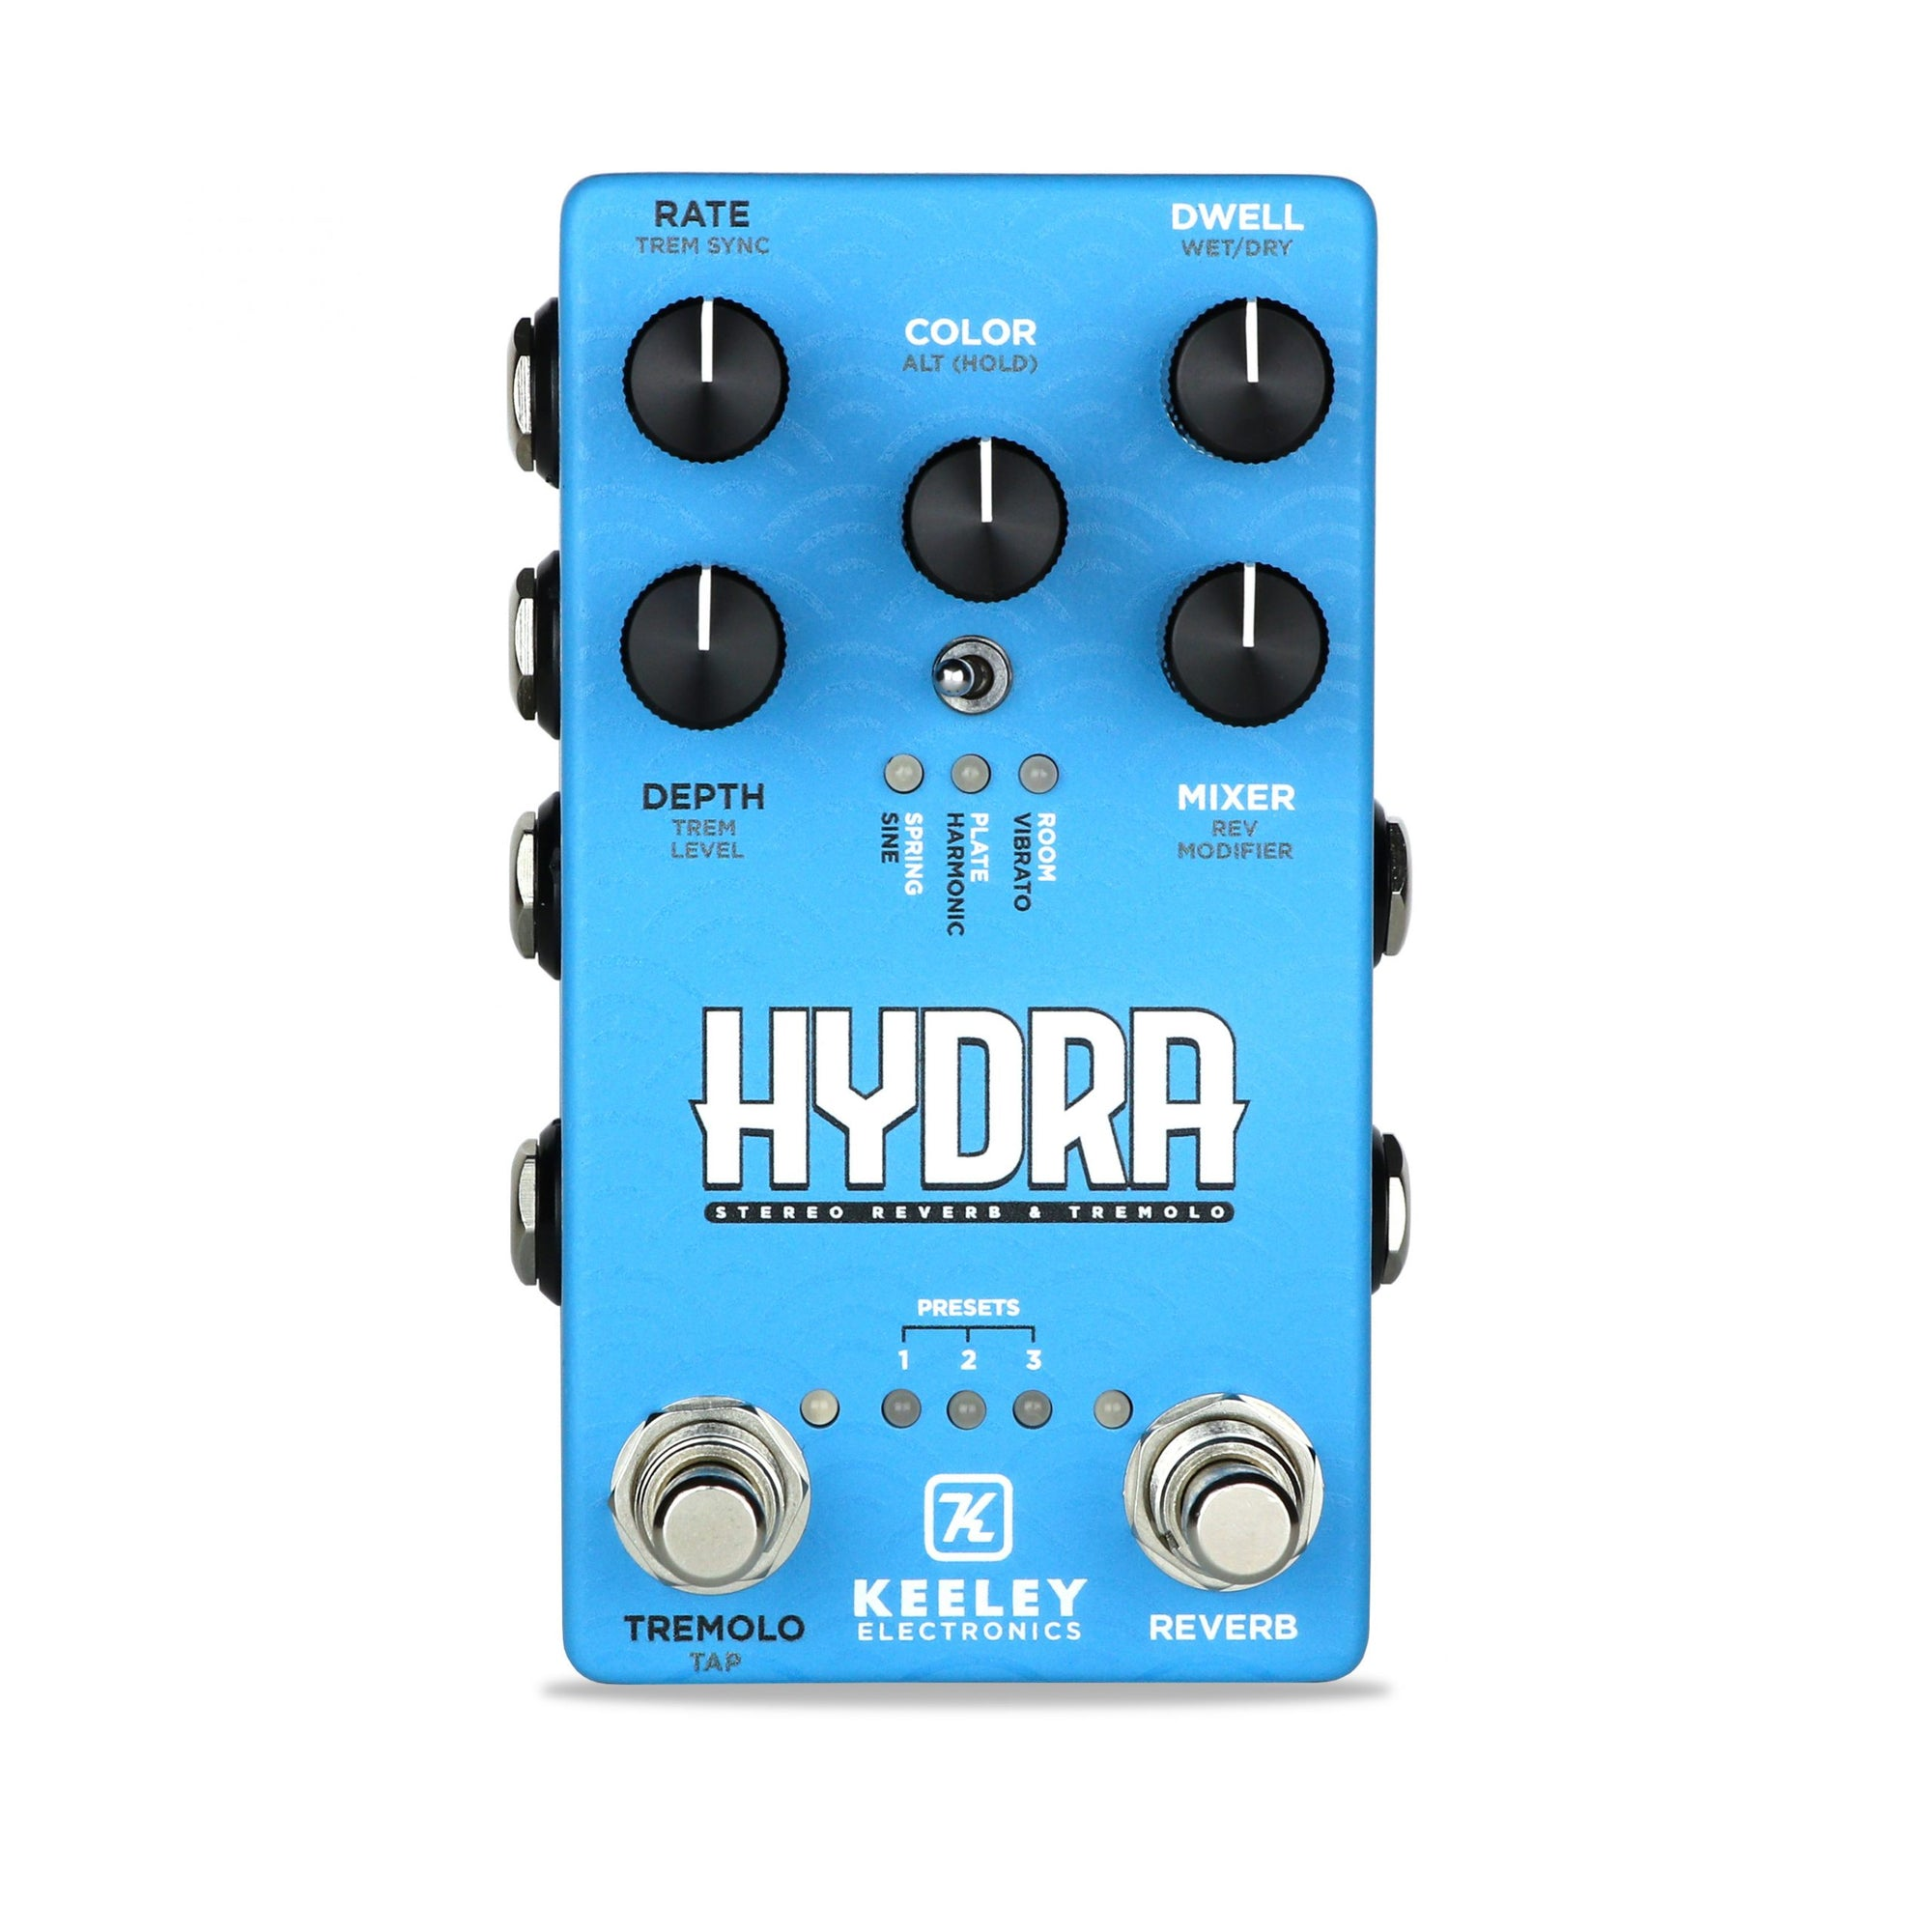 Keeley HYDRA Stereo Reverb & Tremolo